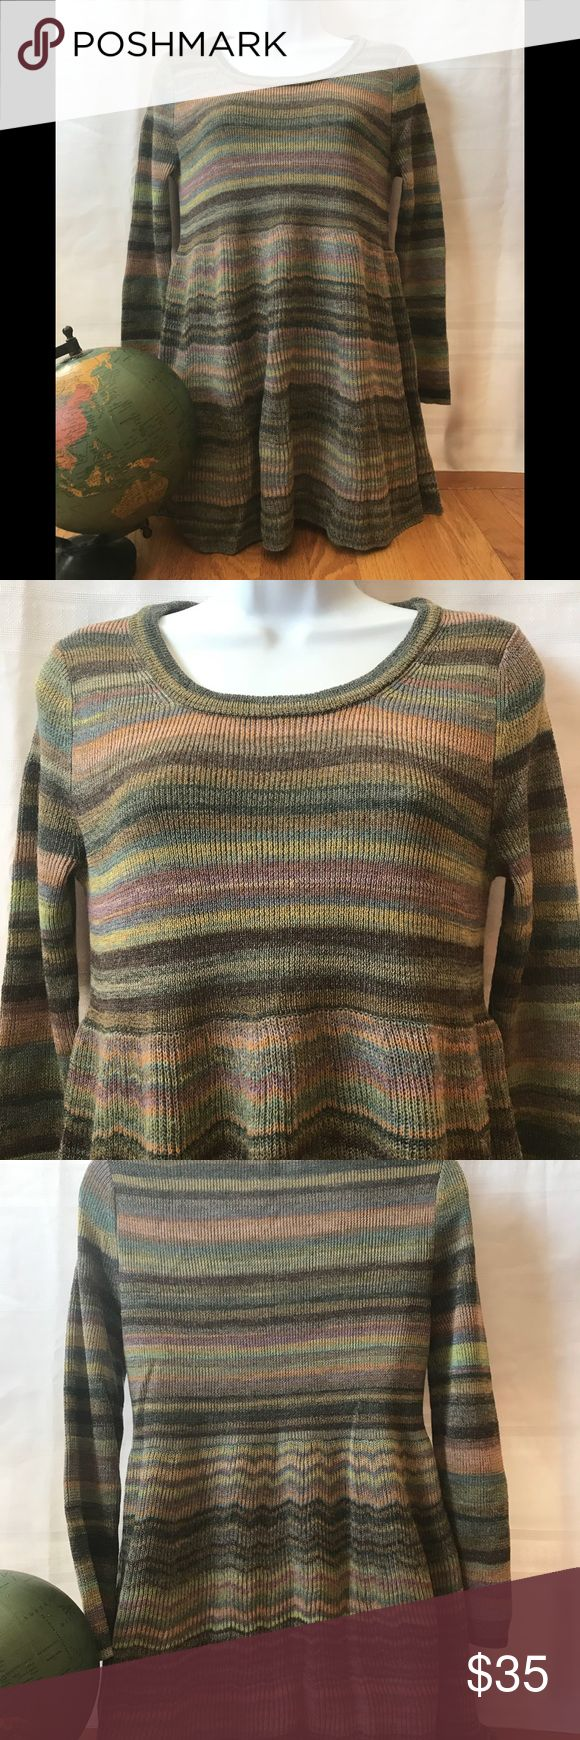 Moth nwot striped baby doll tunic sweater anthro The sweater has never been worn before. Armpit to armpit measures 21 inches in length from under the collar measures 31 inches. Love the creative stripes and the great colors for spring Anthropologie Sweaters Crew & Scoop Necks